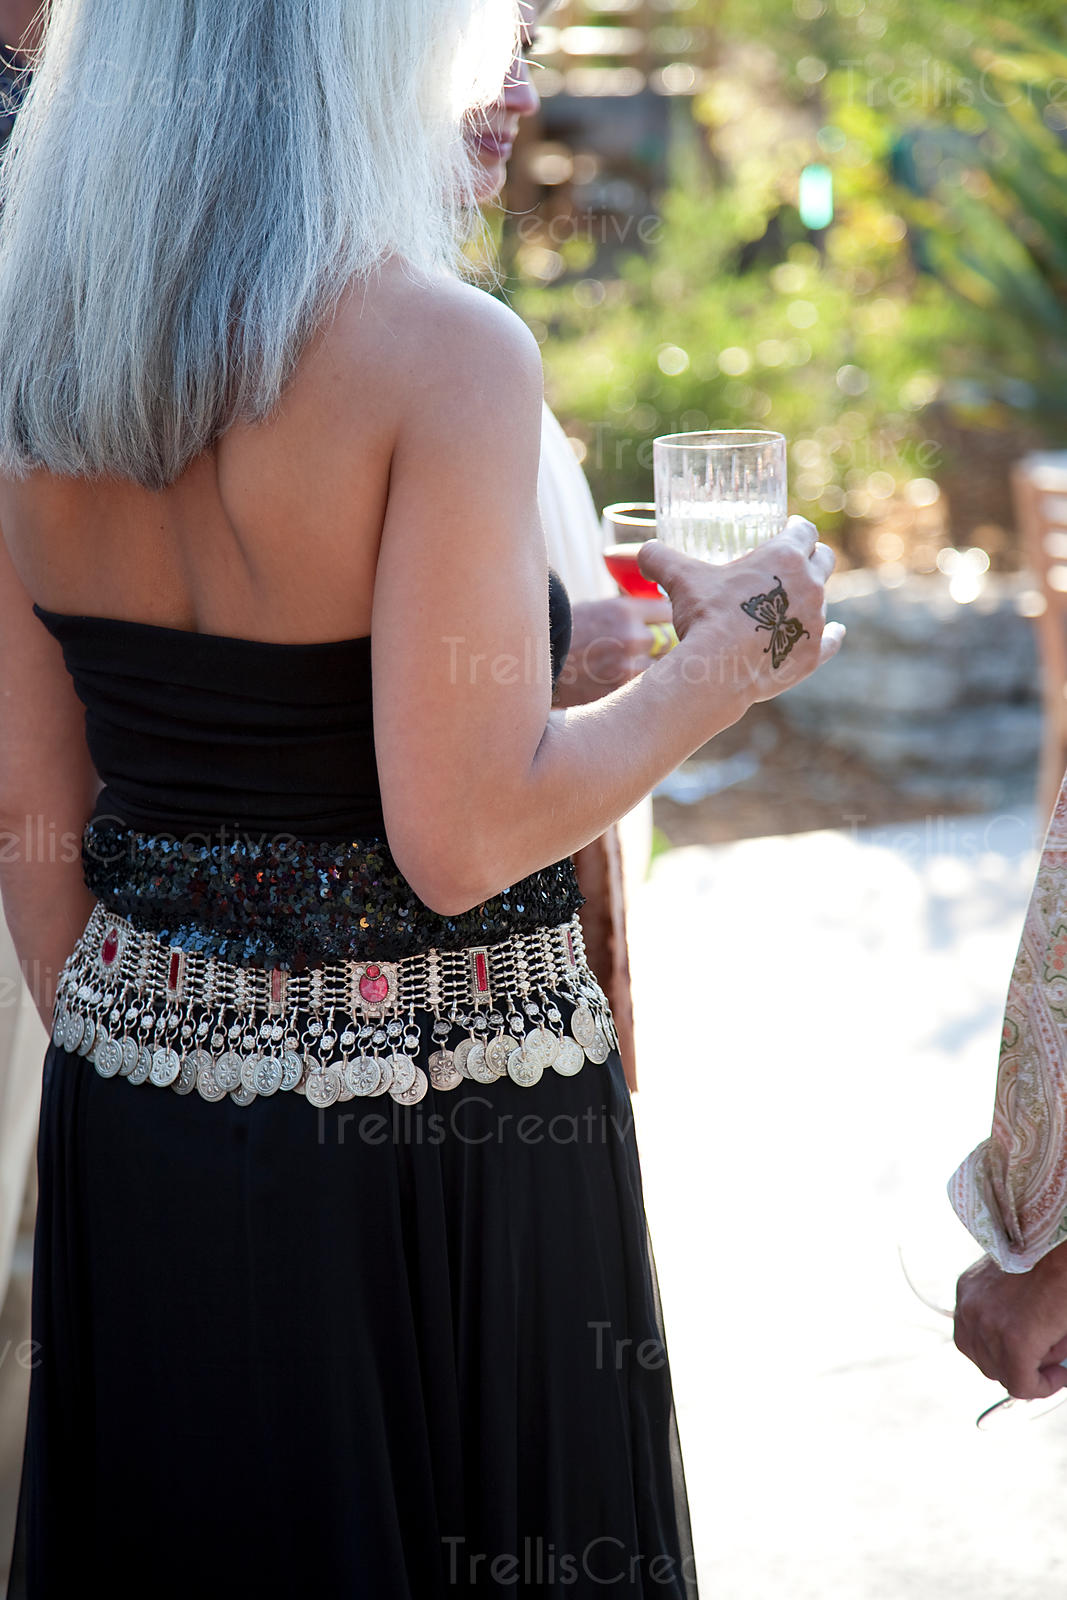 An older woman drinks wine at an outdoor party